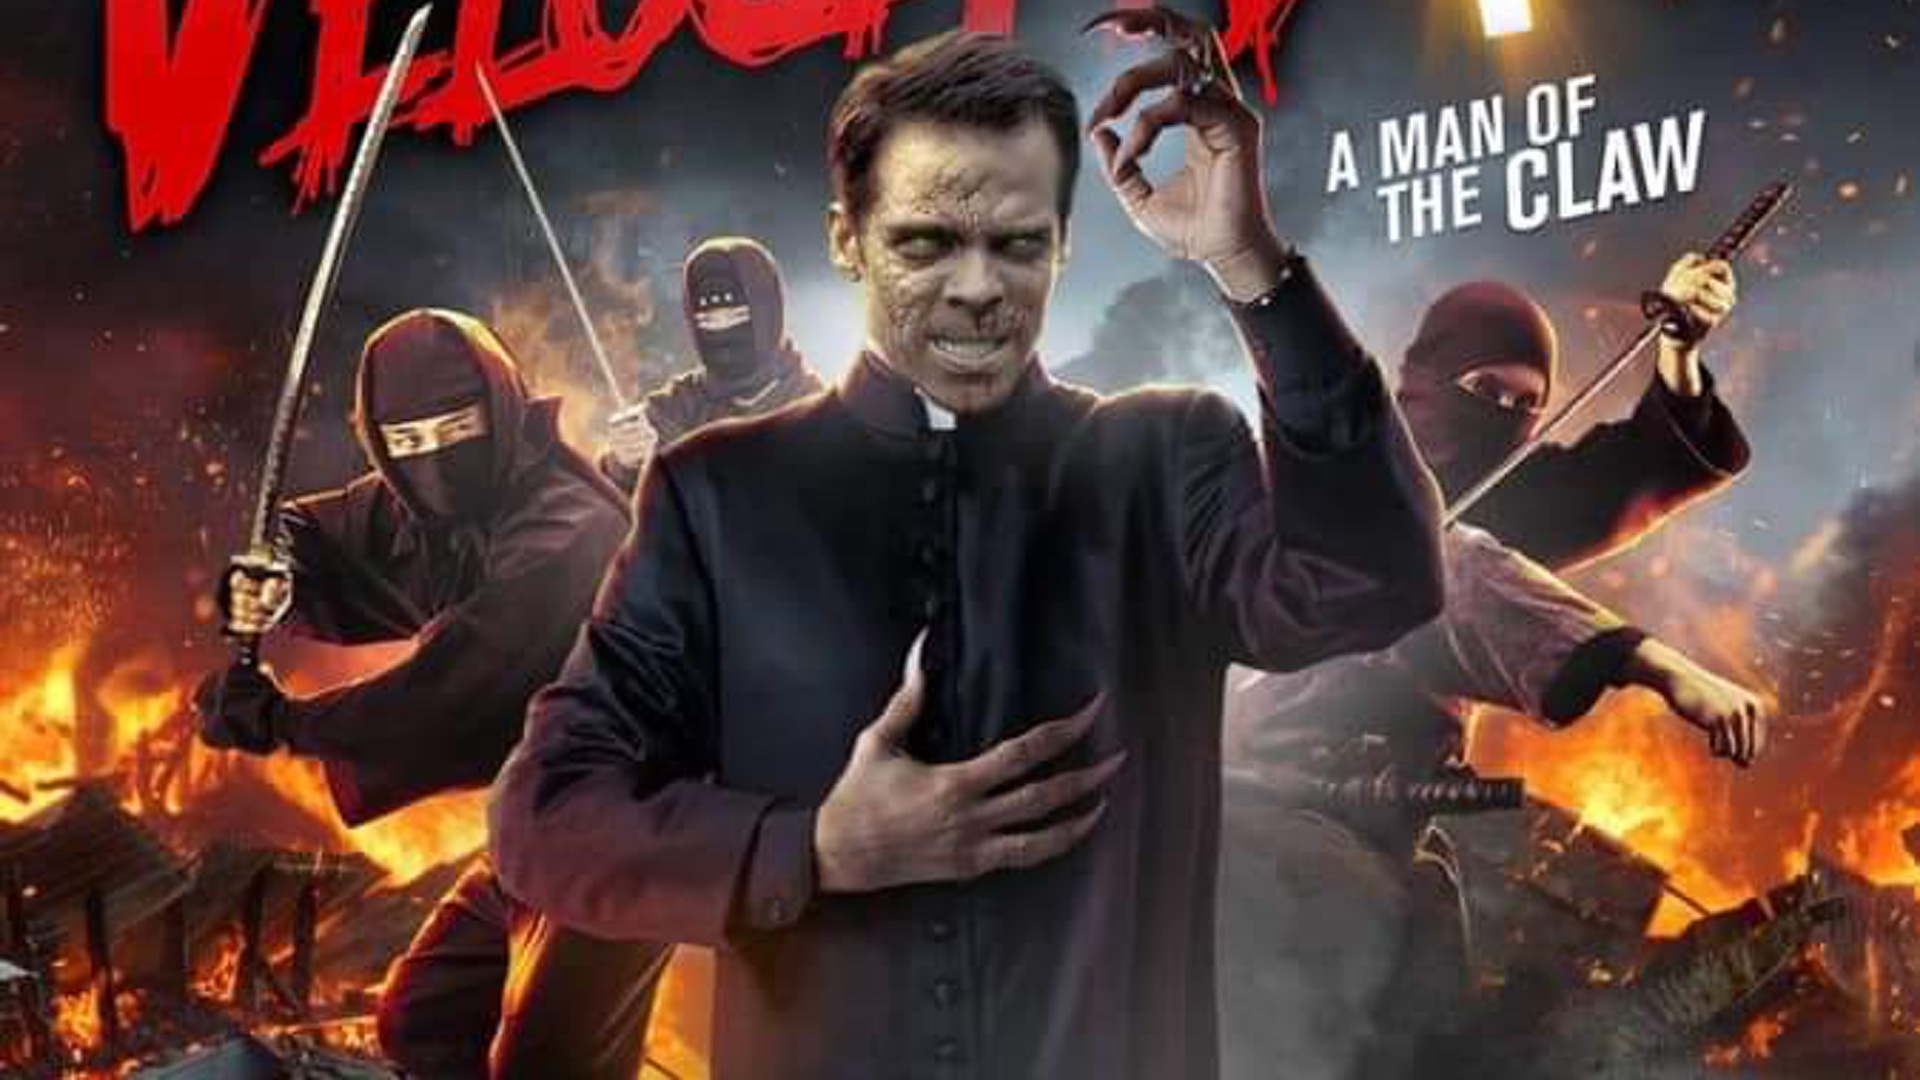 a-priest-transforms-into-a-dinosaur-and-fights-ninjas-in-trailer-for-the-velocipastor-social.jpg